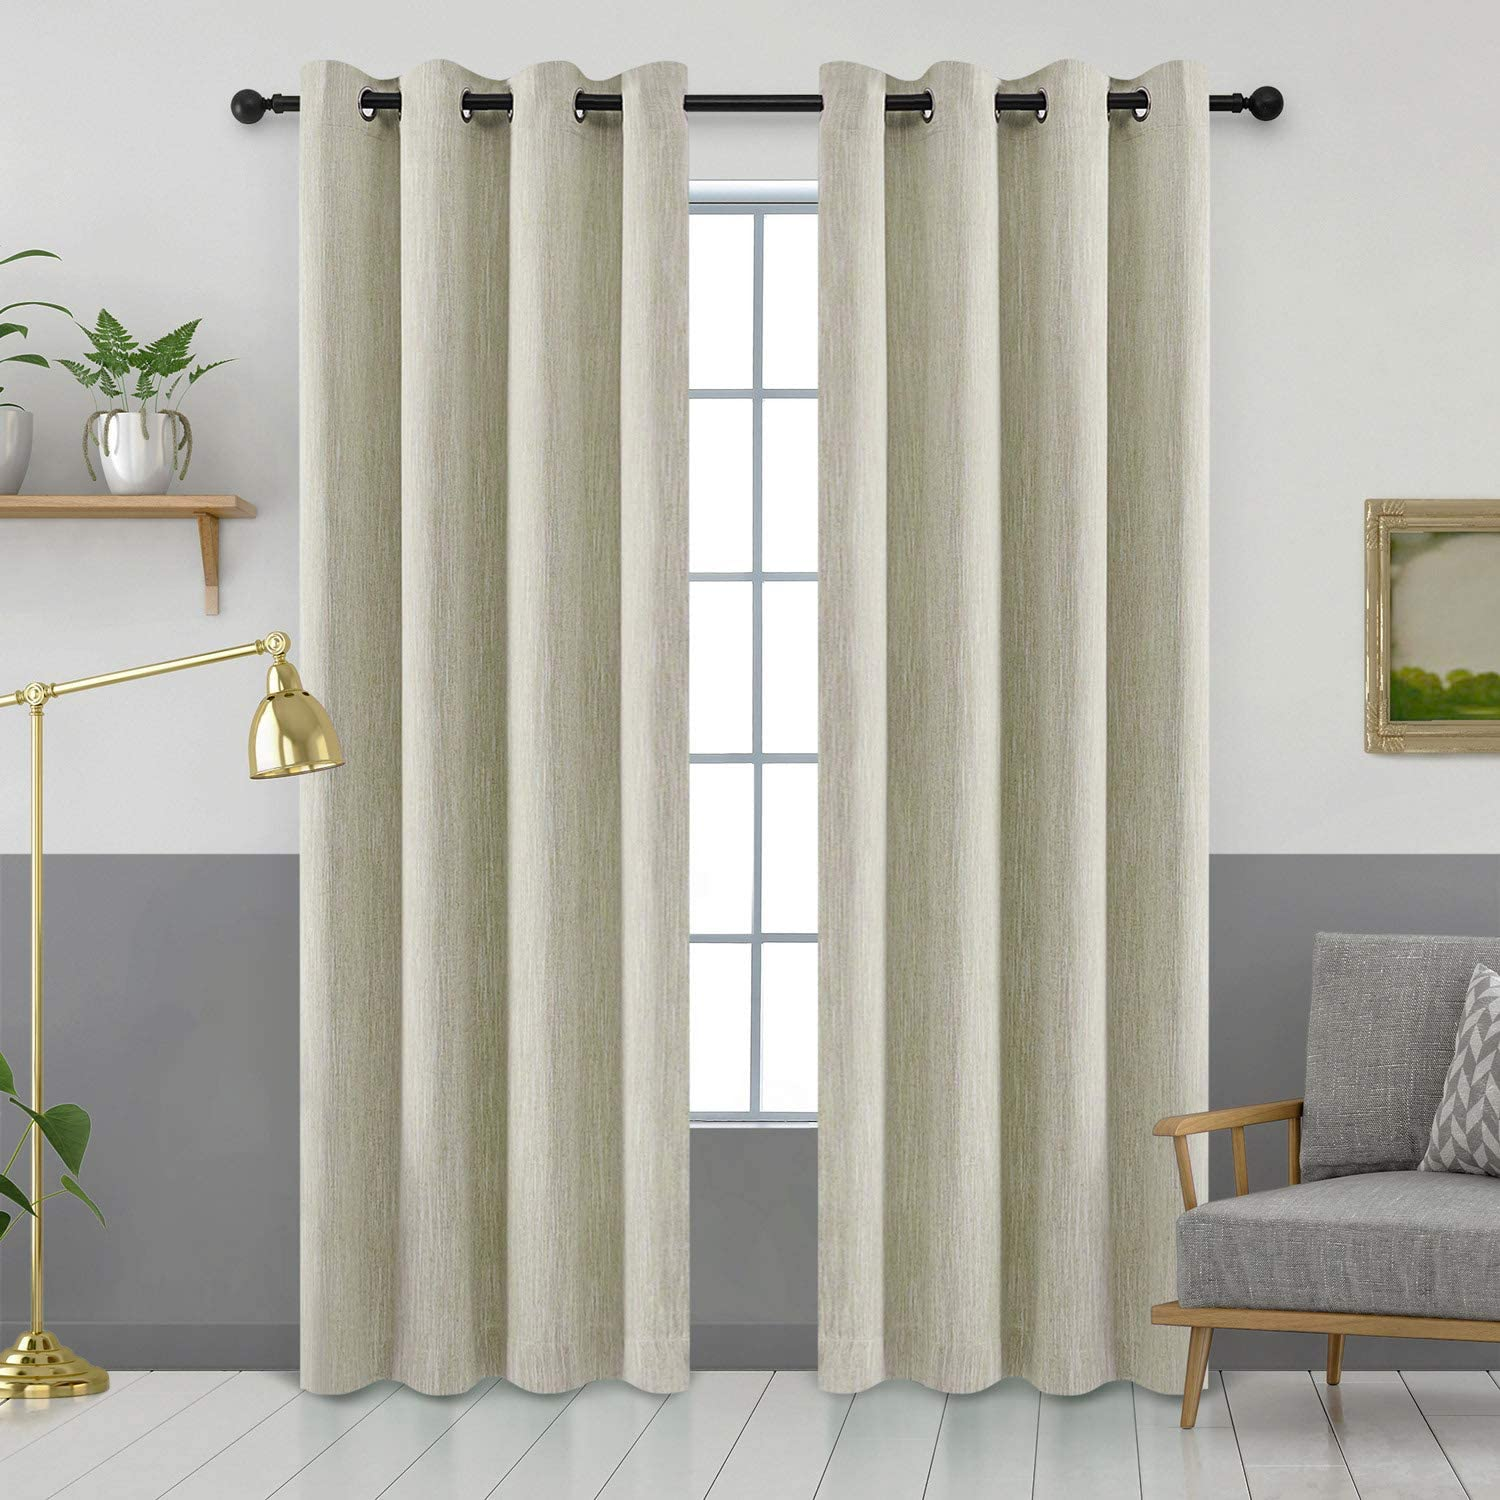 Melodieux Elegant Cotton Room Darkening Blackout Curtains for Living Room Bedroom Thermal Insulated Grommet Drapes, 52 by 84 Inch, Beige (1 Panel)